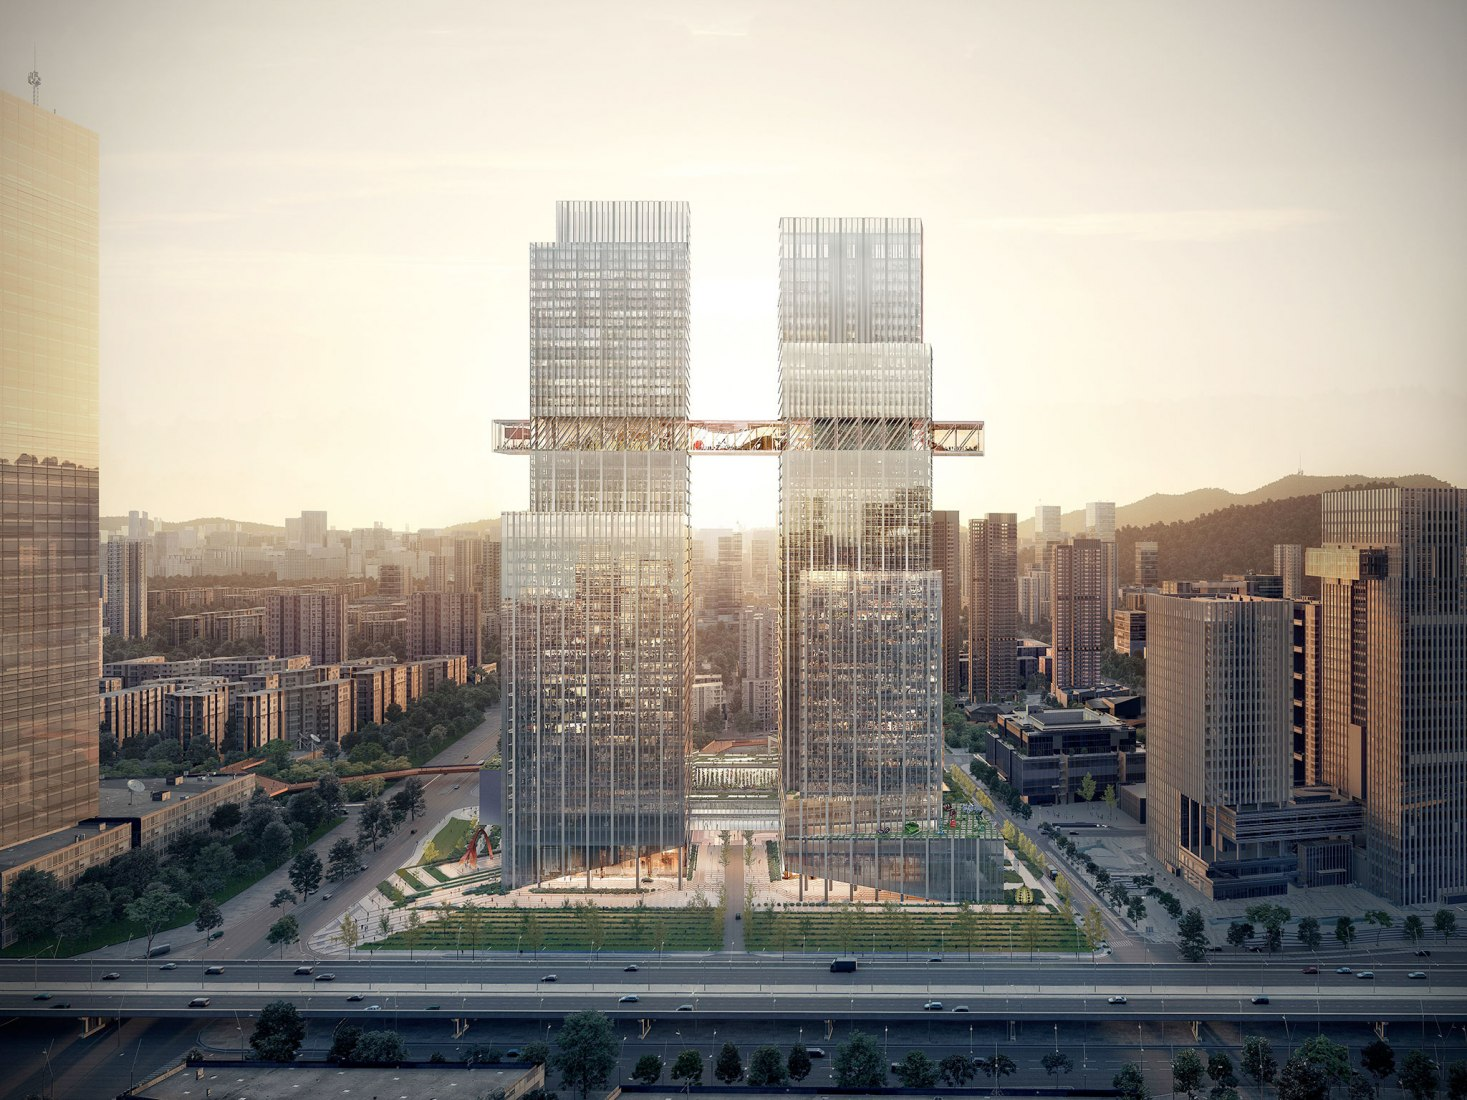 Rendering. CMG Qianhai Global Trade Center by OMA. Image courtesy of OMA